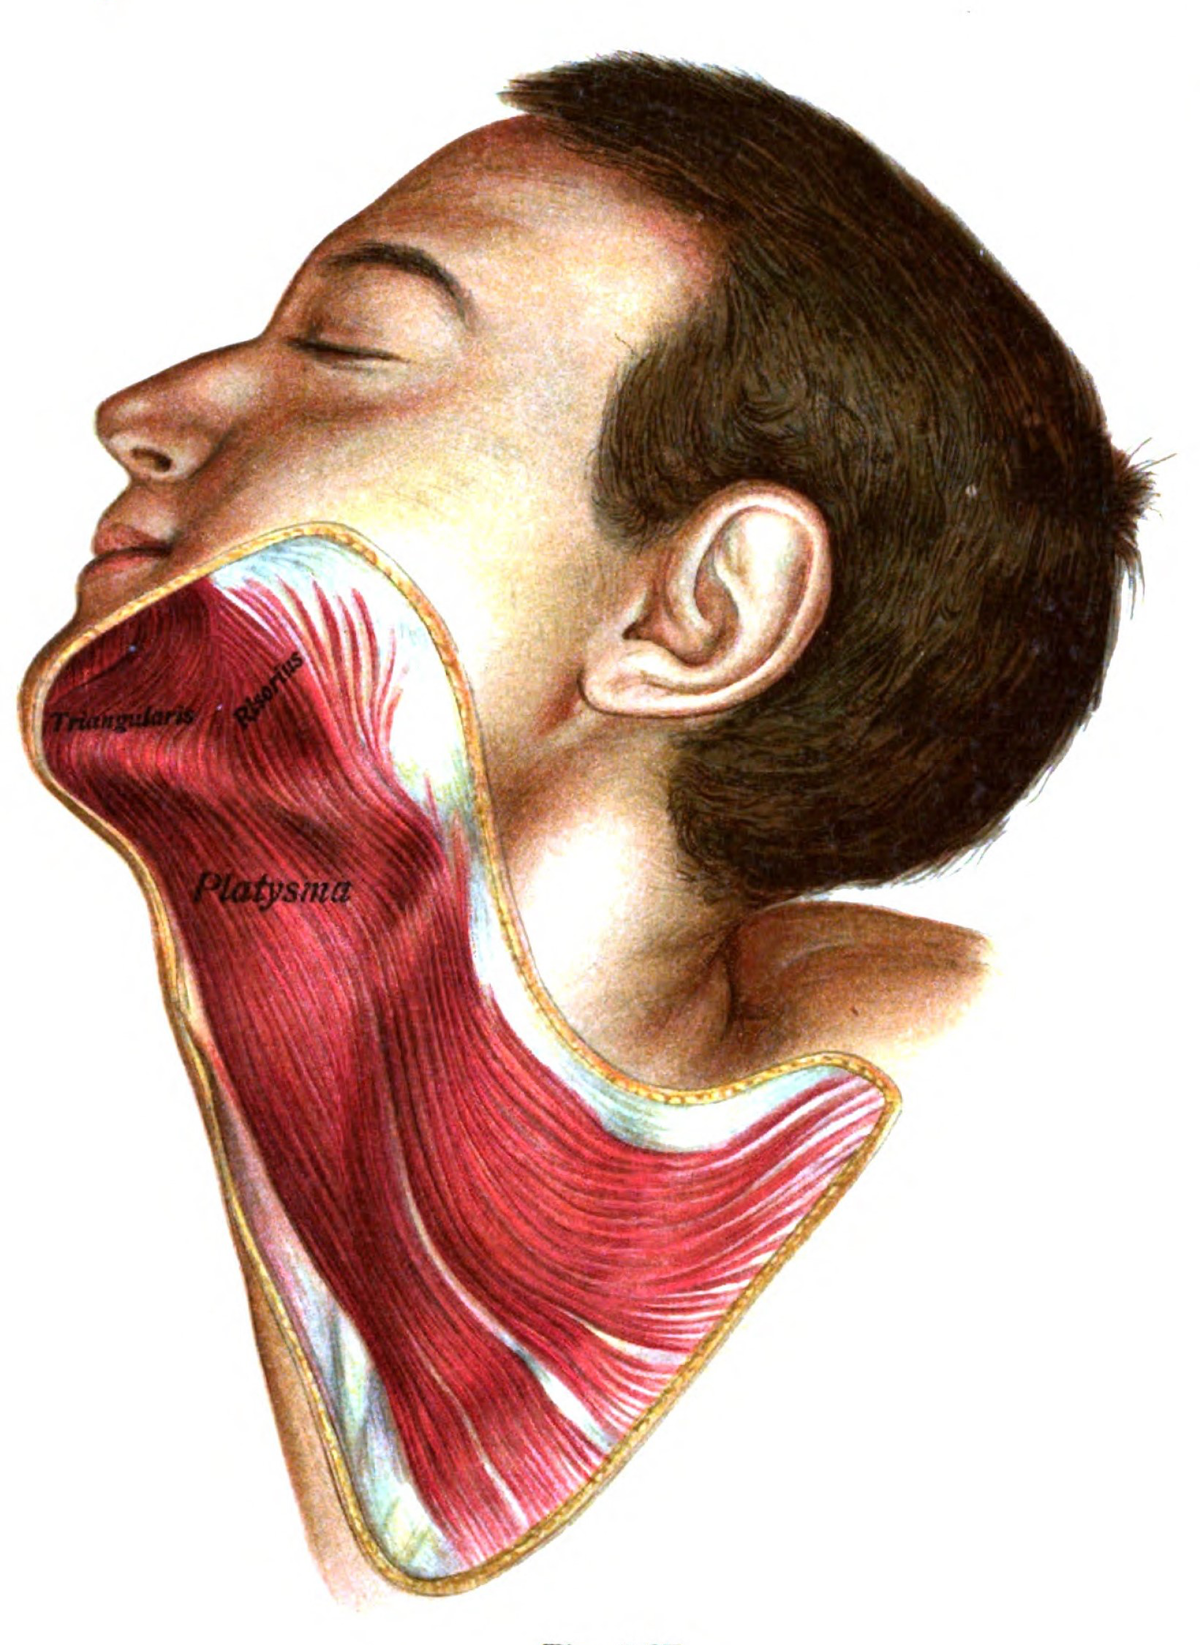 Platysma muscle - Wikipedia